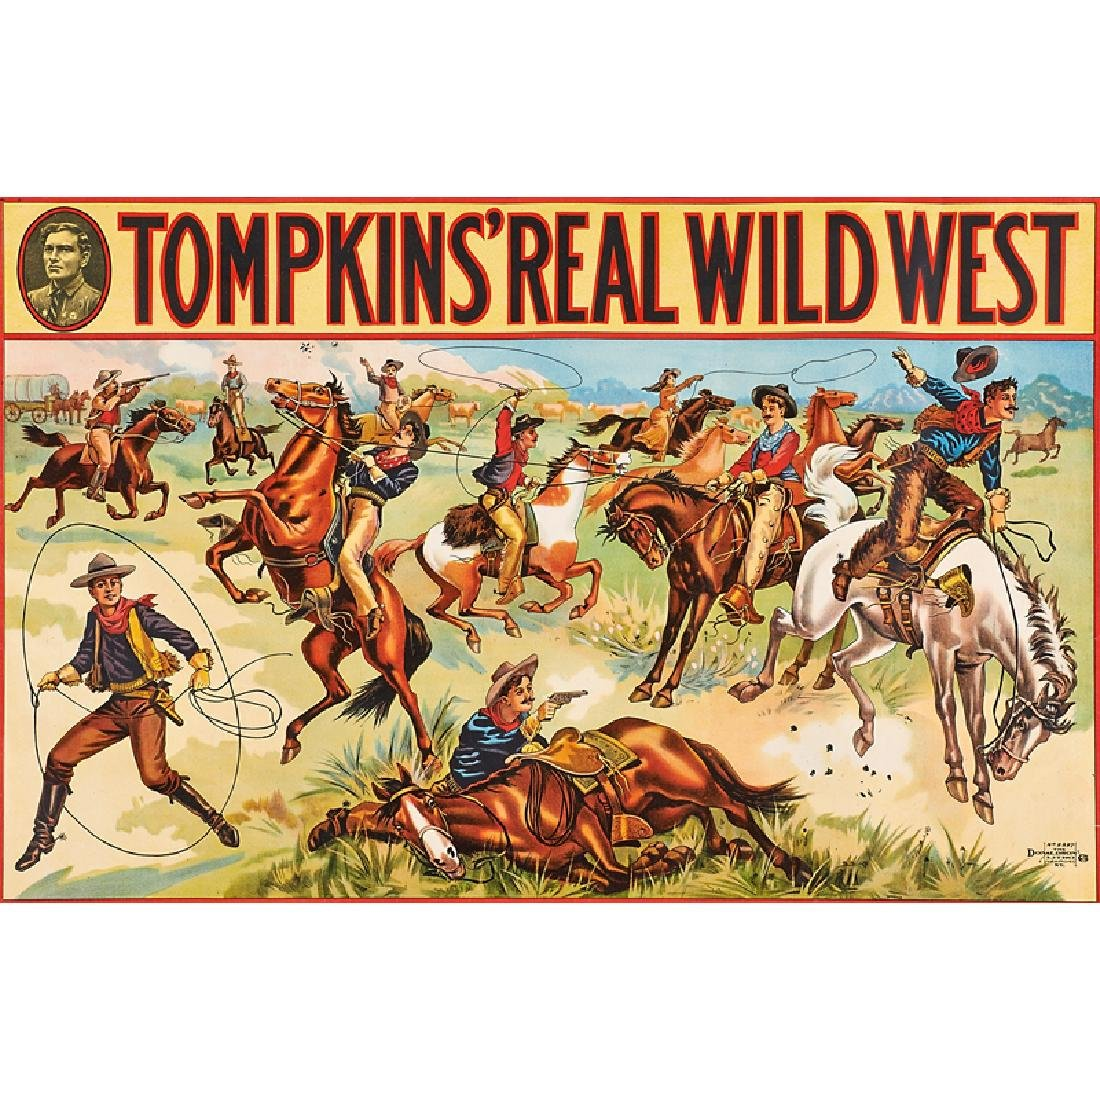 TOMPKINS' REAL WILD WEST POSTERS - 2